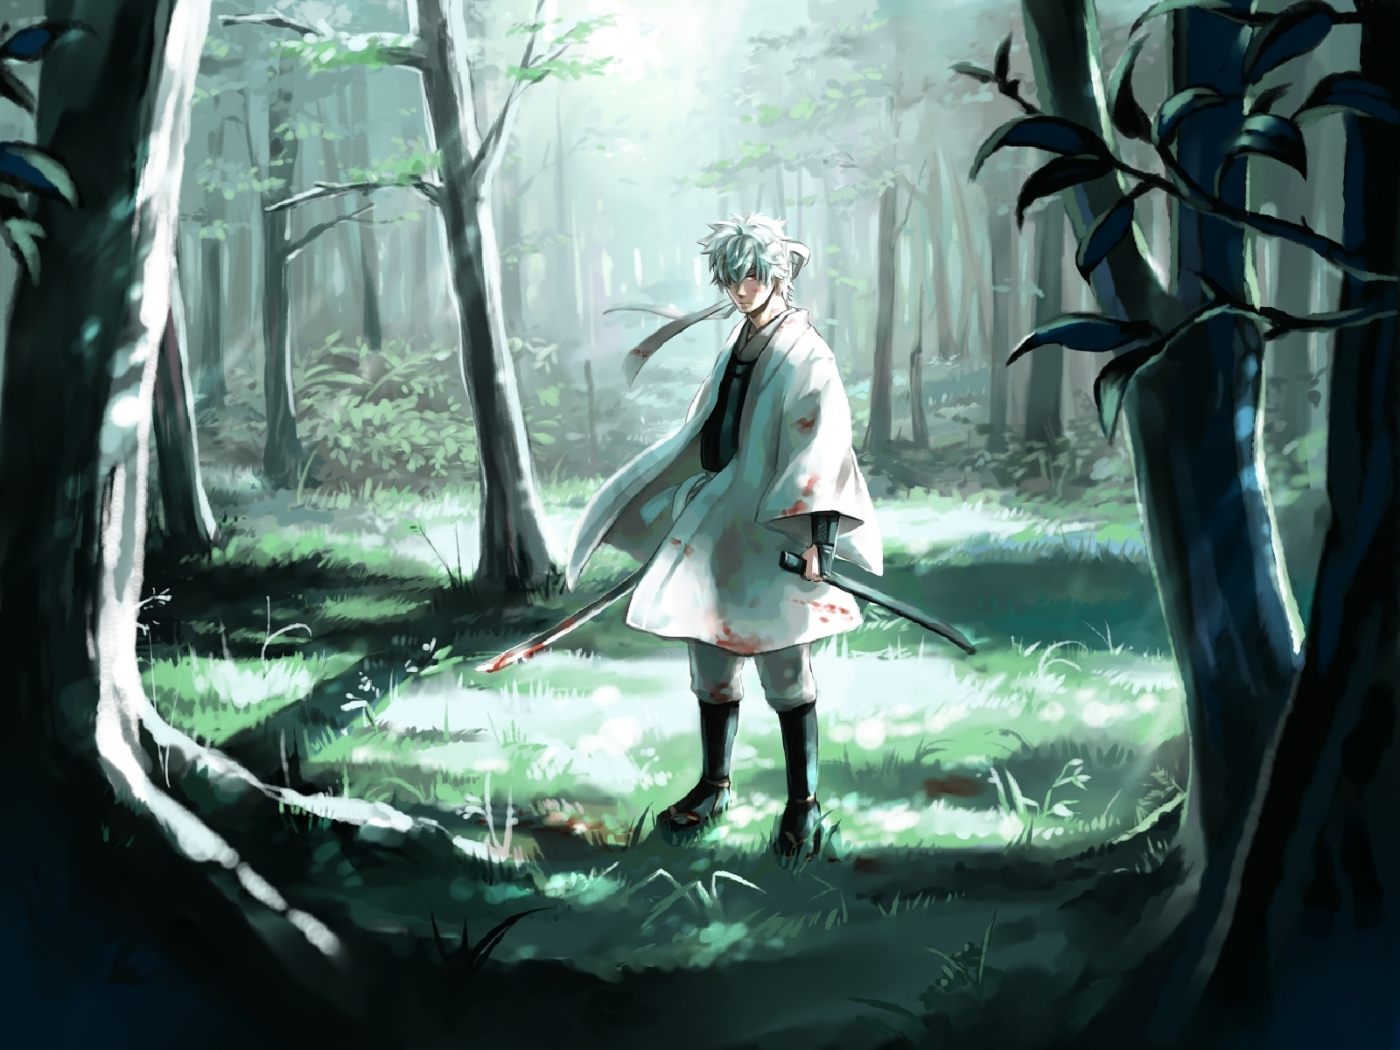 38269 download wallpaper Anime, Men screensavers and pictures for free